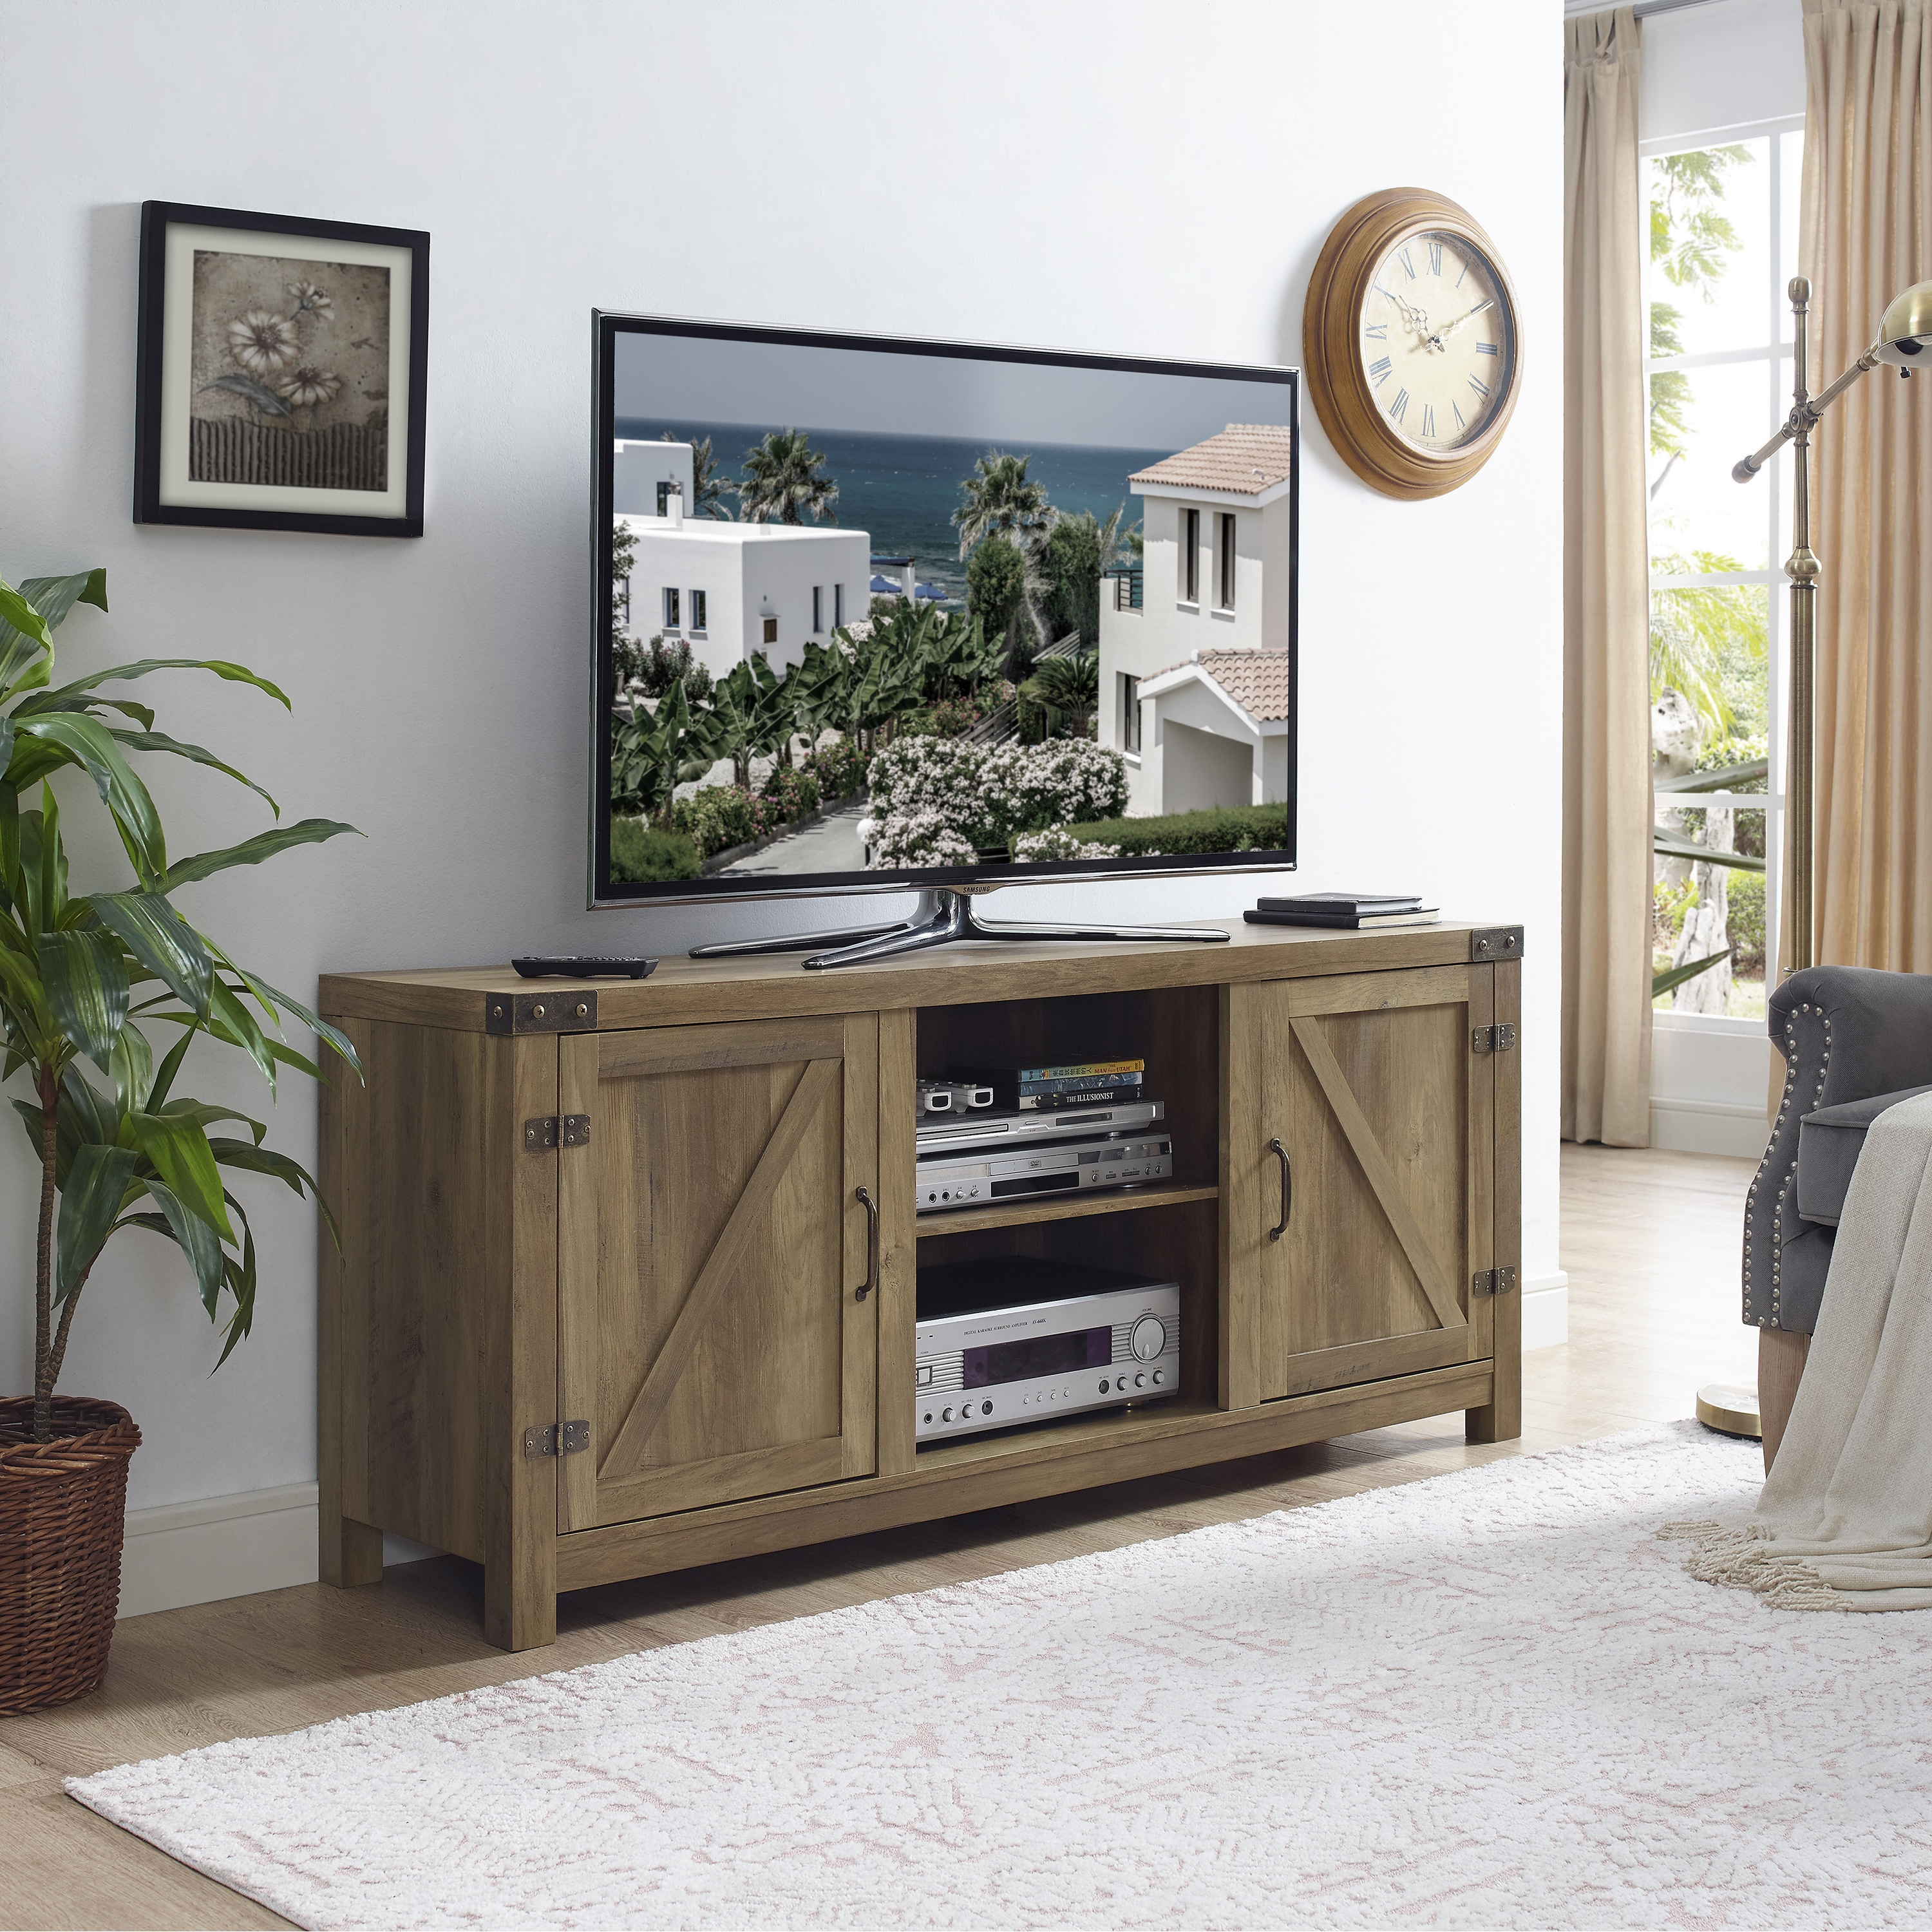 The Gray Barn Firebranch Barn Door TV Stand With Doors (2 Options Available) Great Ideas